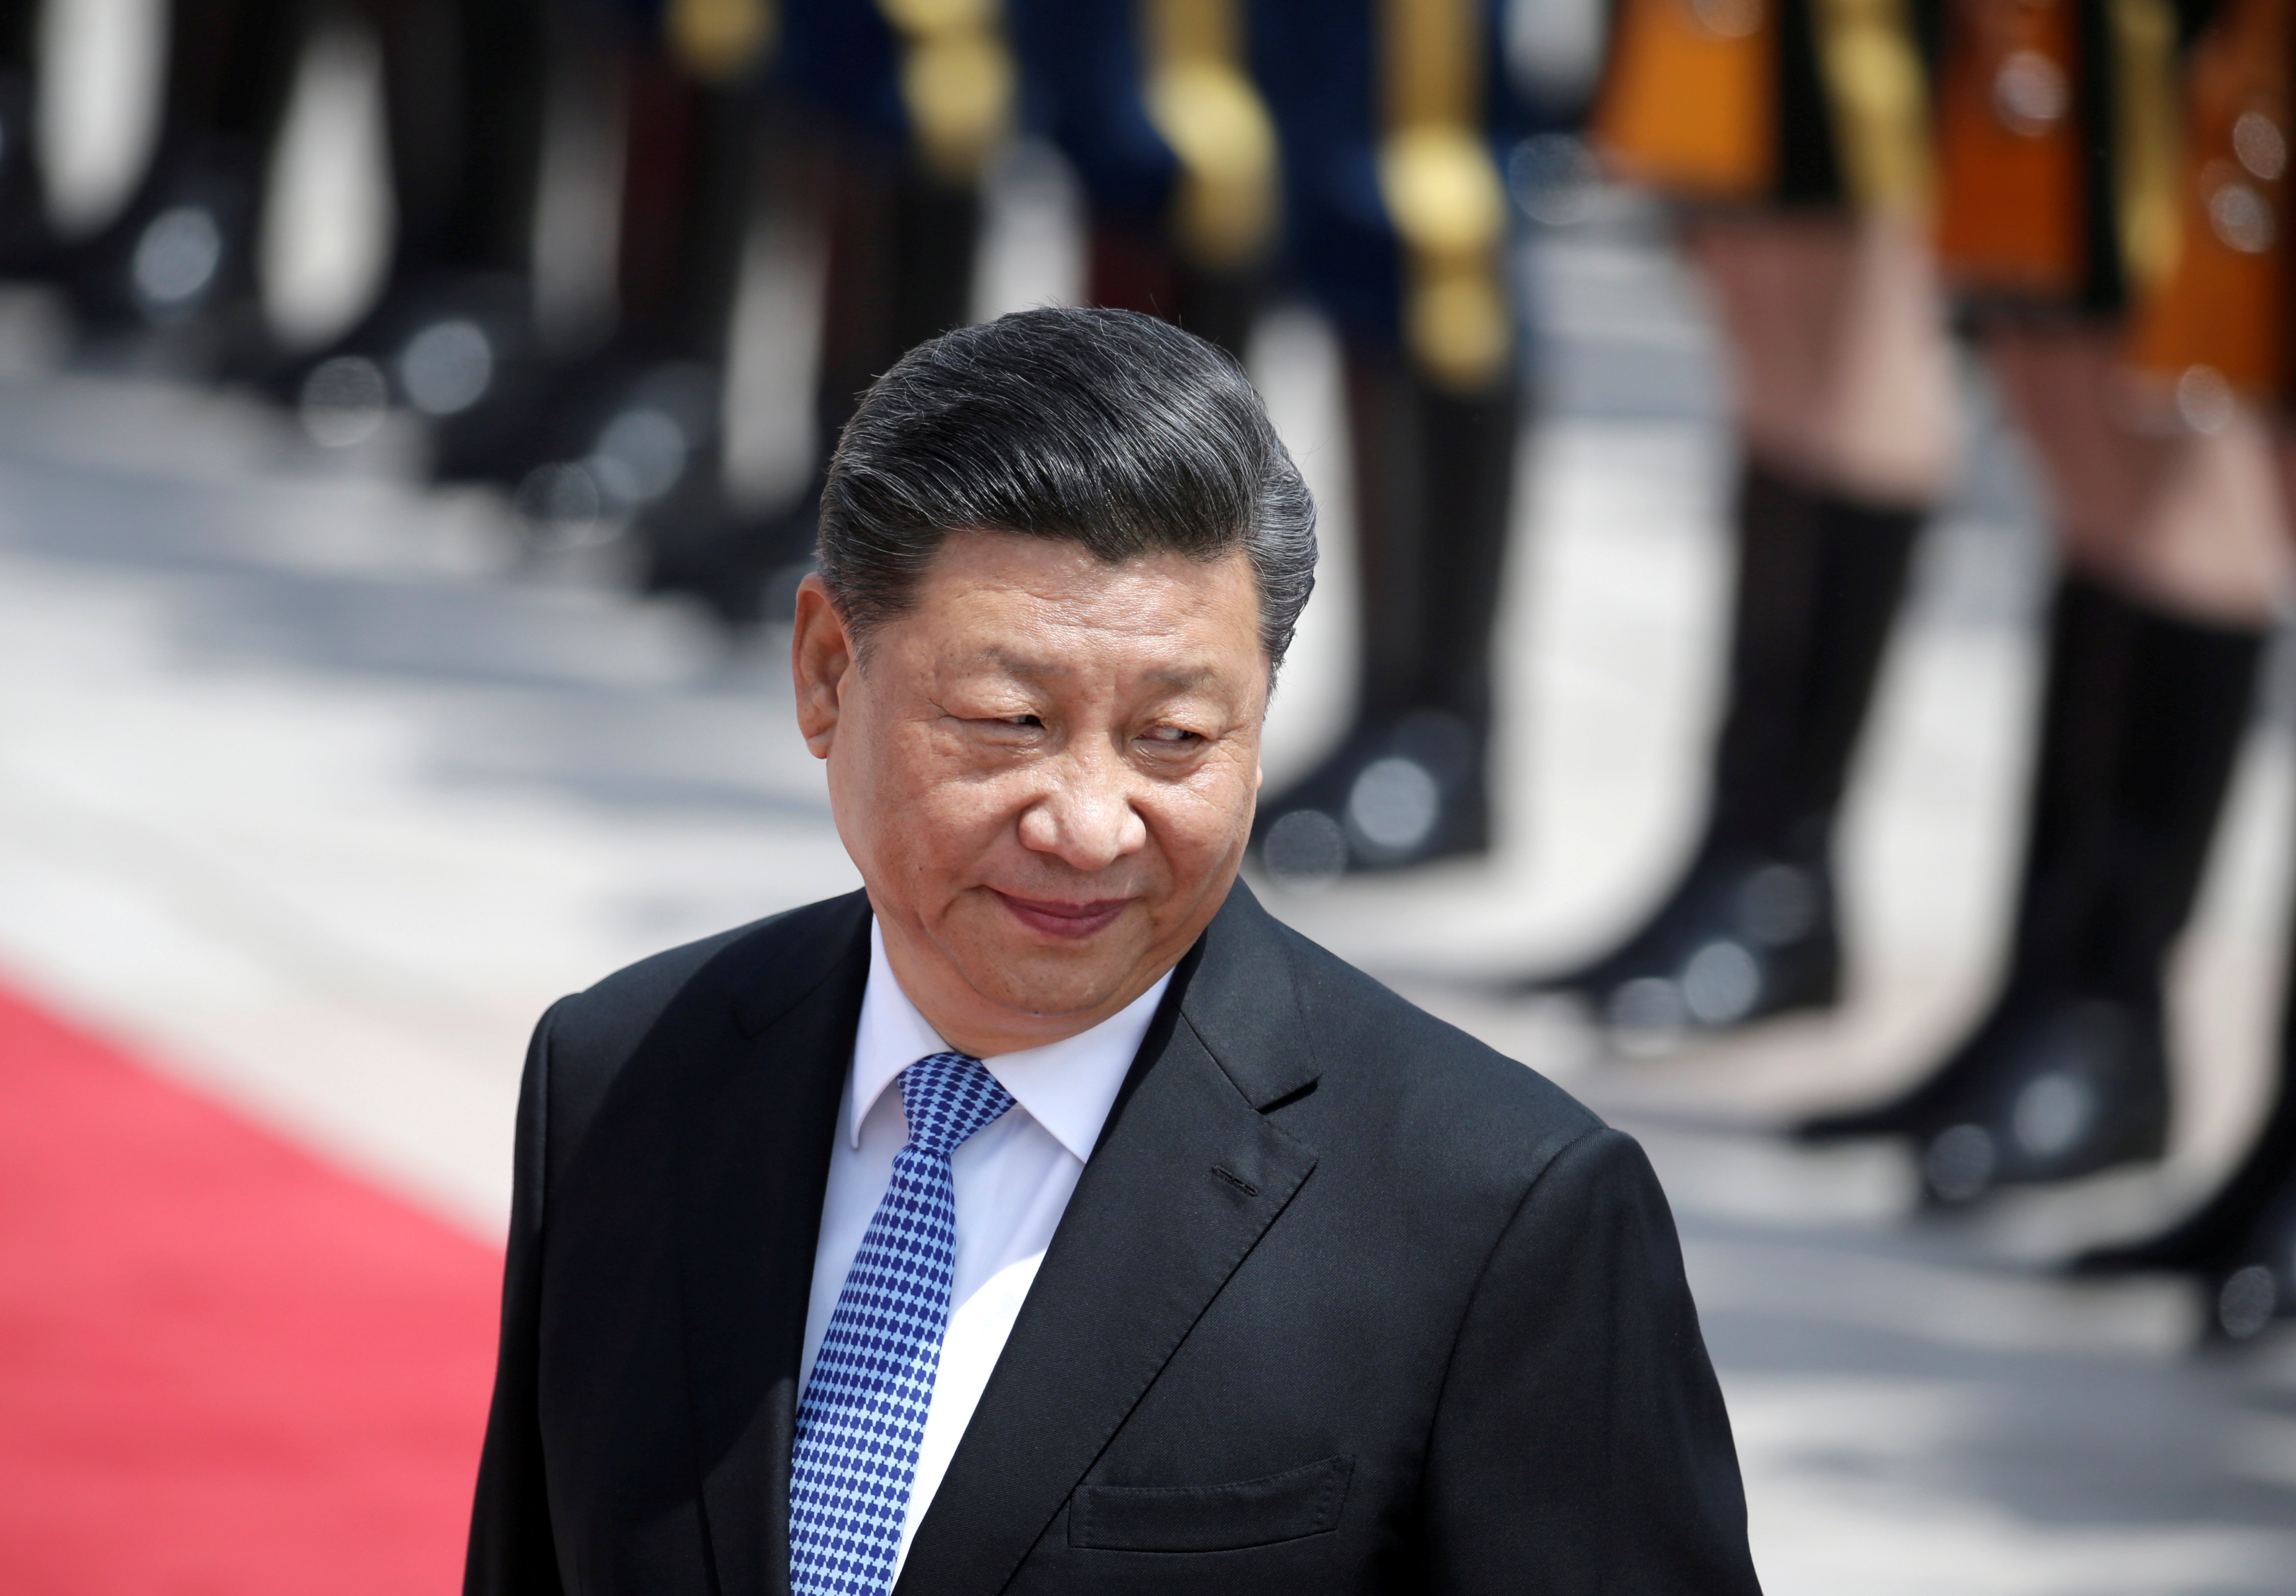 Chinese President Xi Jinping attends a welcoming ceremony for Greek President Prokopis Pavlopoulos outside the Great Hall of the People, in Beijing, China May 14, 2019.